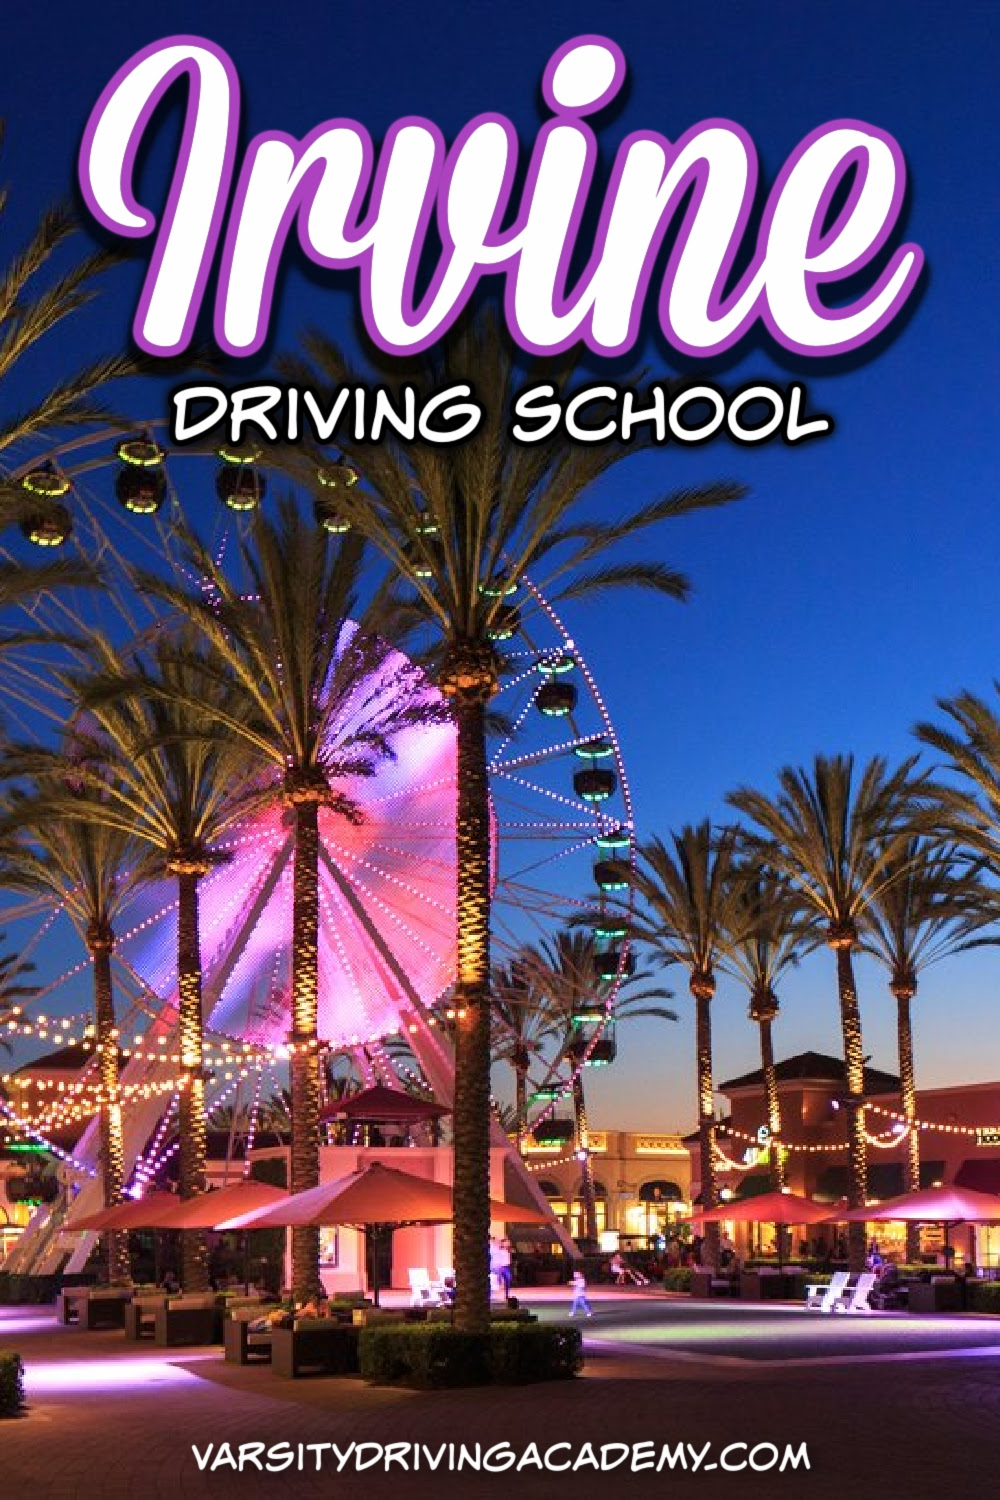 Varsity Driving School is the #1 rated Irvine Driving School for many reasons and in many locations. Find out if your High School is on our list.